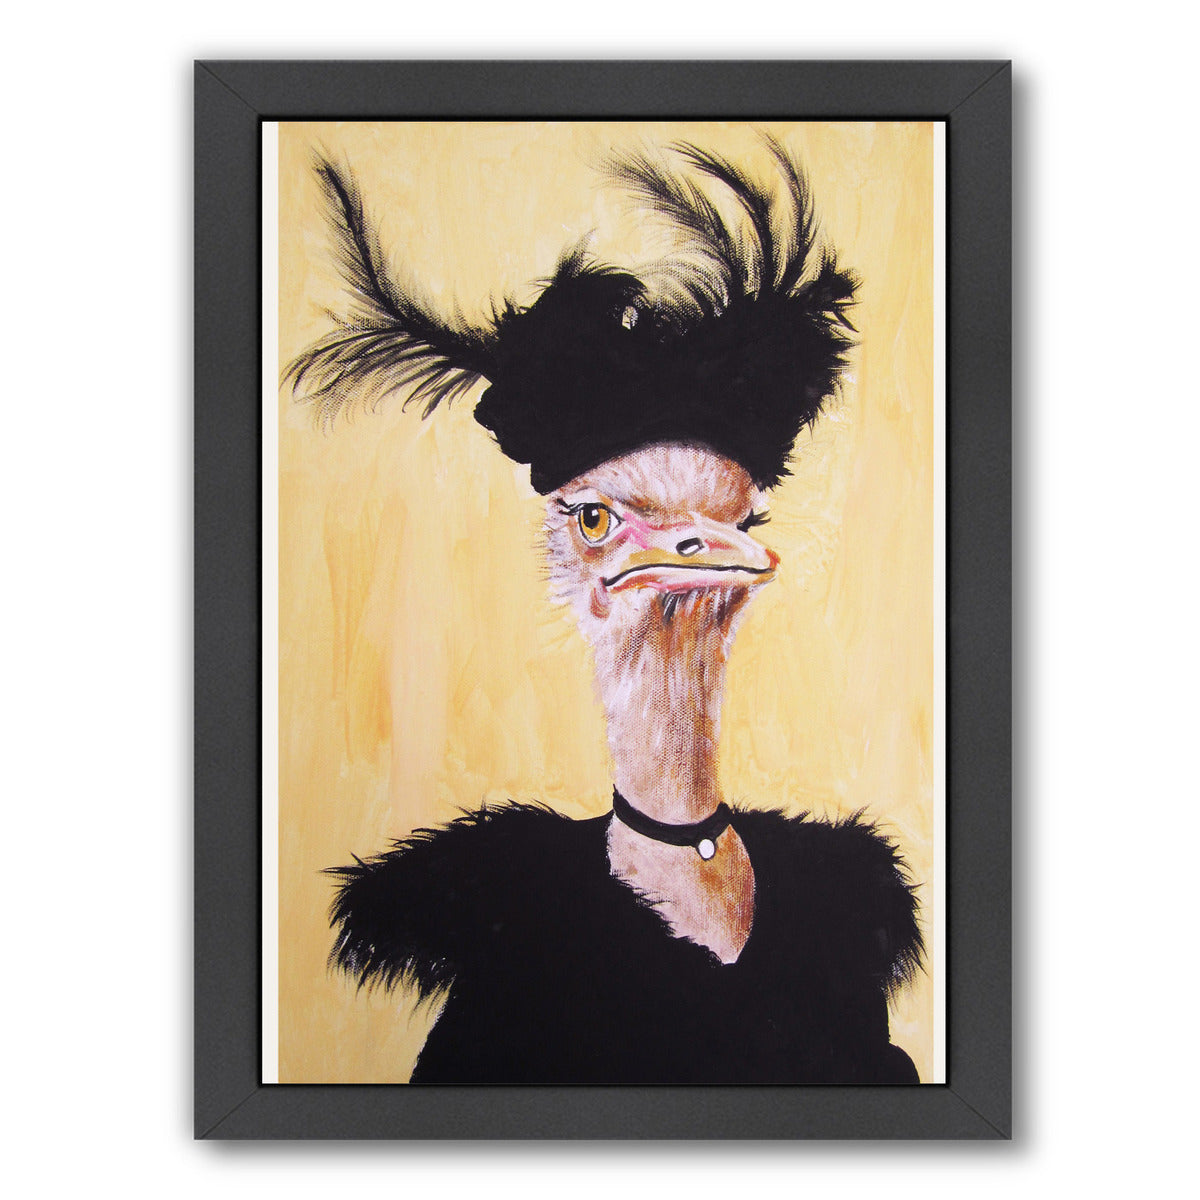 Jetset Ostrich By Coco De Paris - Black Framed Print - Wall Art - Americanflat